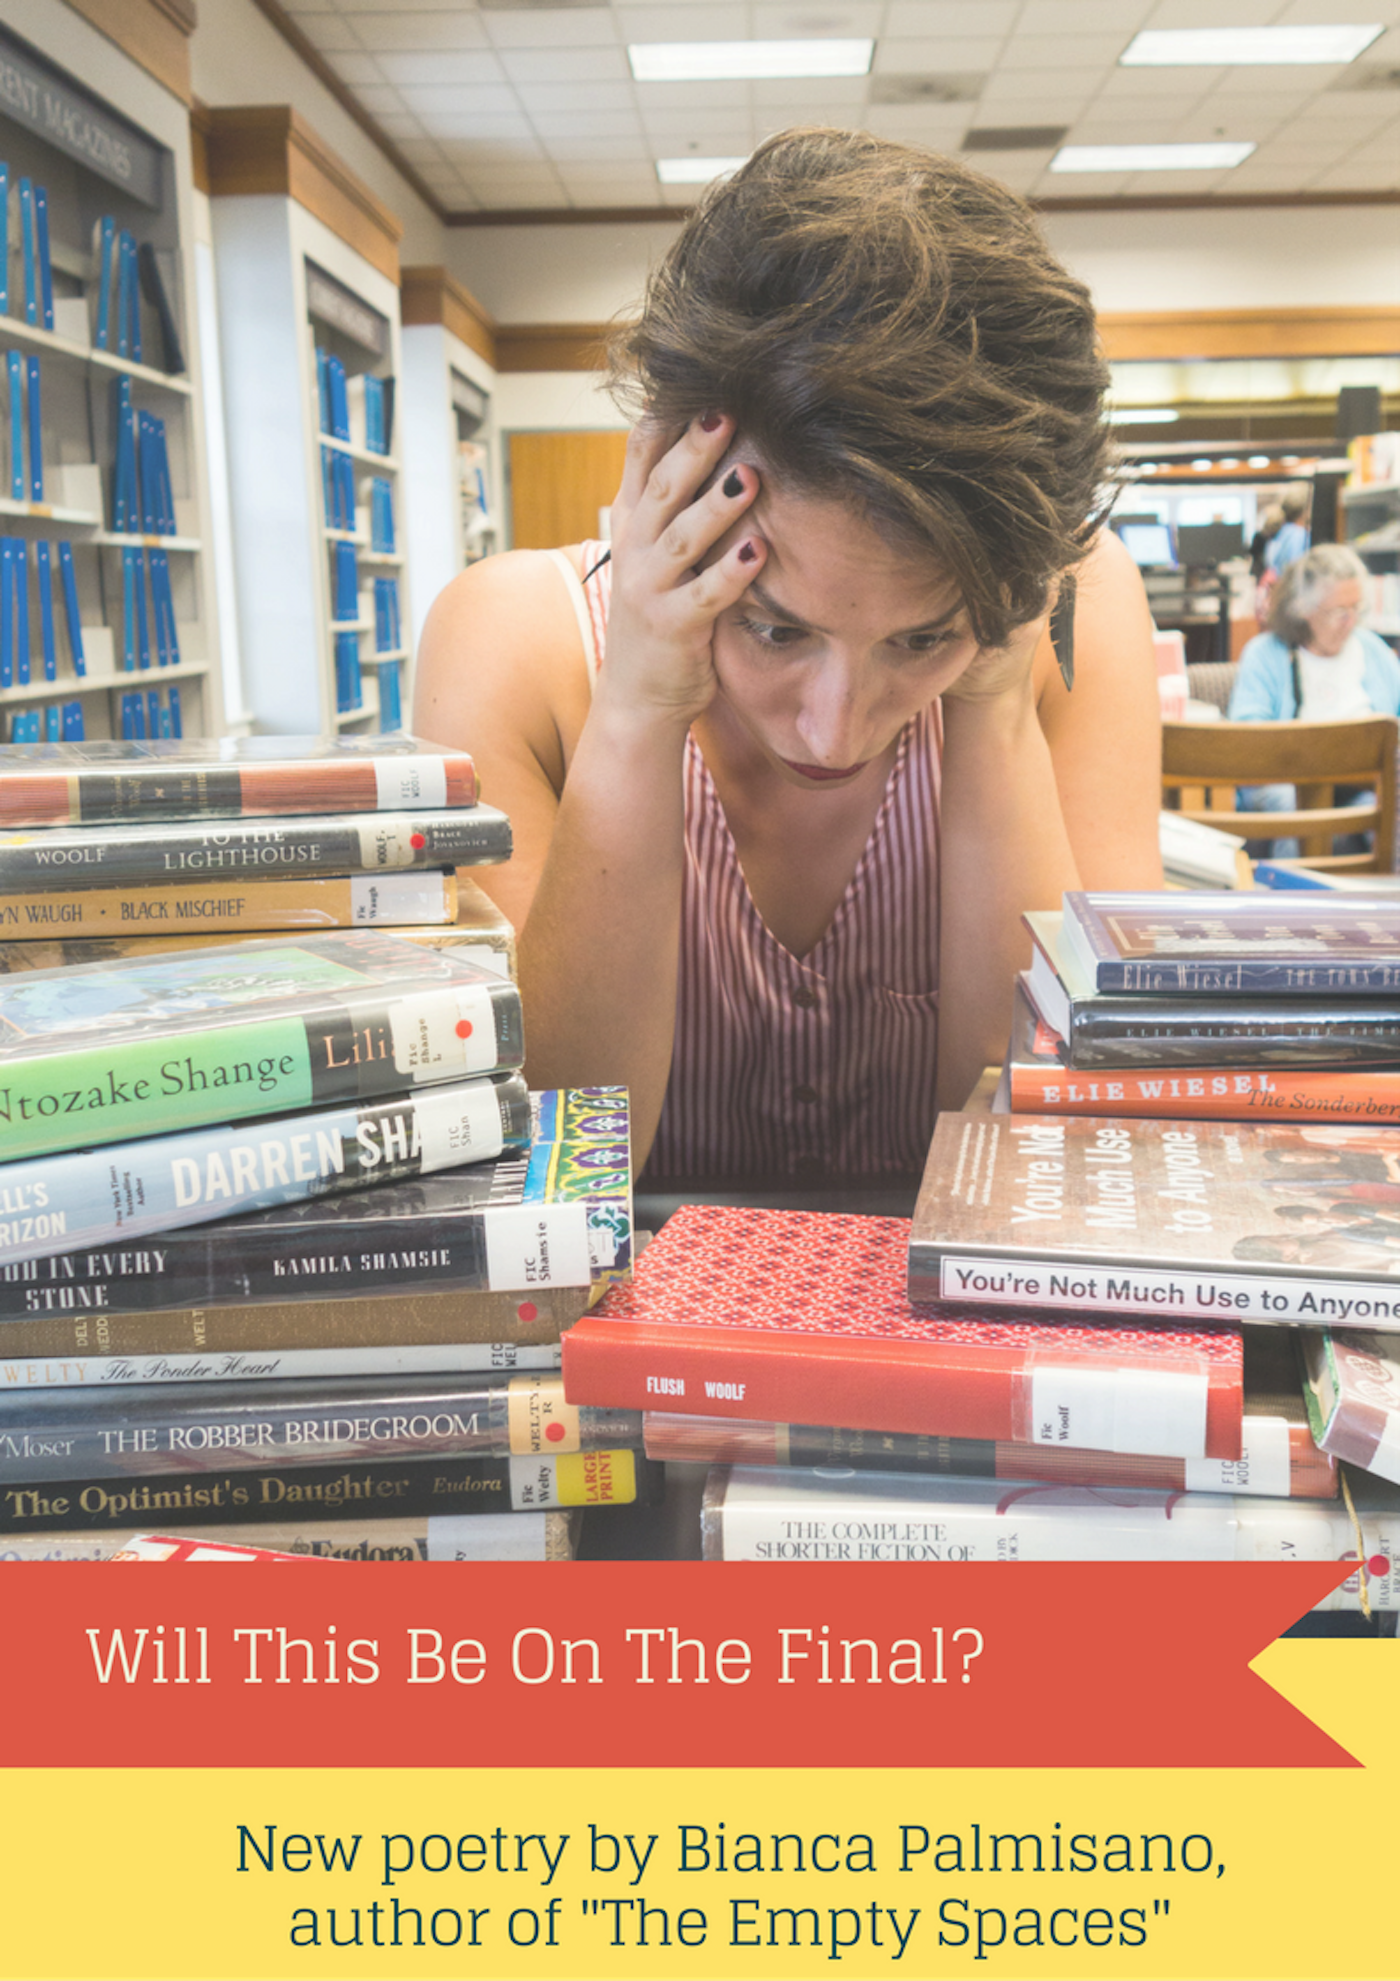 Will this be on the final?  978-1-941771-15-0   GOODREADS -   GOOGLE BOOKS    $4.99 DOWNLOAD   AVAILABLE AS AN EBOOK FROM:   AOIS21 MARKET - KOBOBOOKS  - GOOGLE PLAY - SMASHWORDS   BARNES & NOBLE - AMAZON - IBOOKSTORE -  Ganxy   AVAILABLE IN PAPERBACK:   AMAZON  - LULU -  BARNES AND NOBLE  -  BOOKSAMILLION